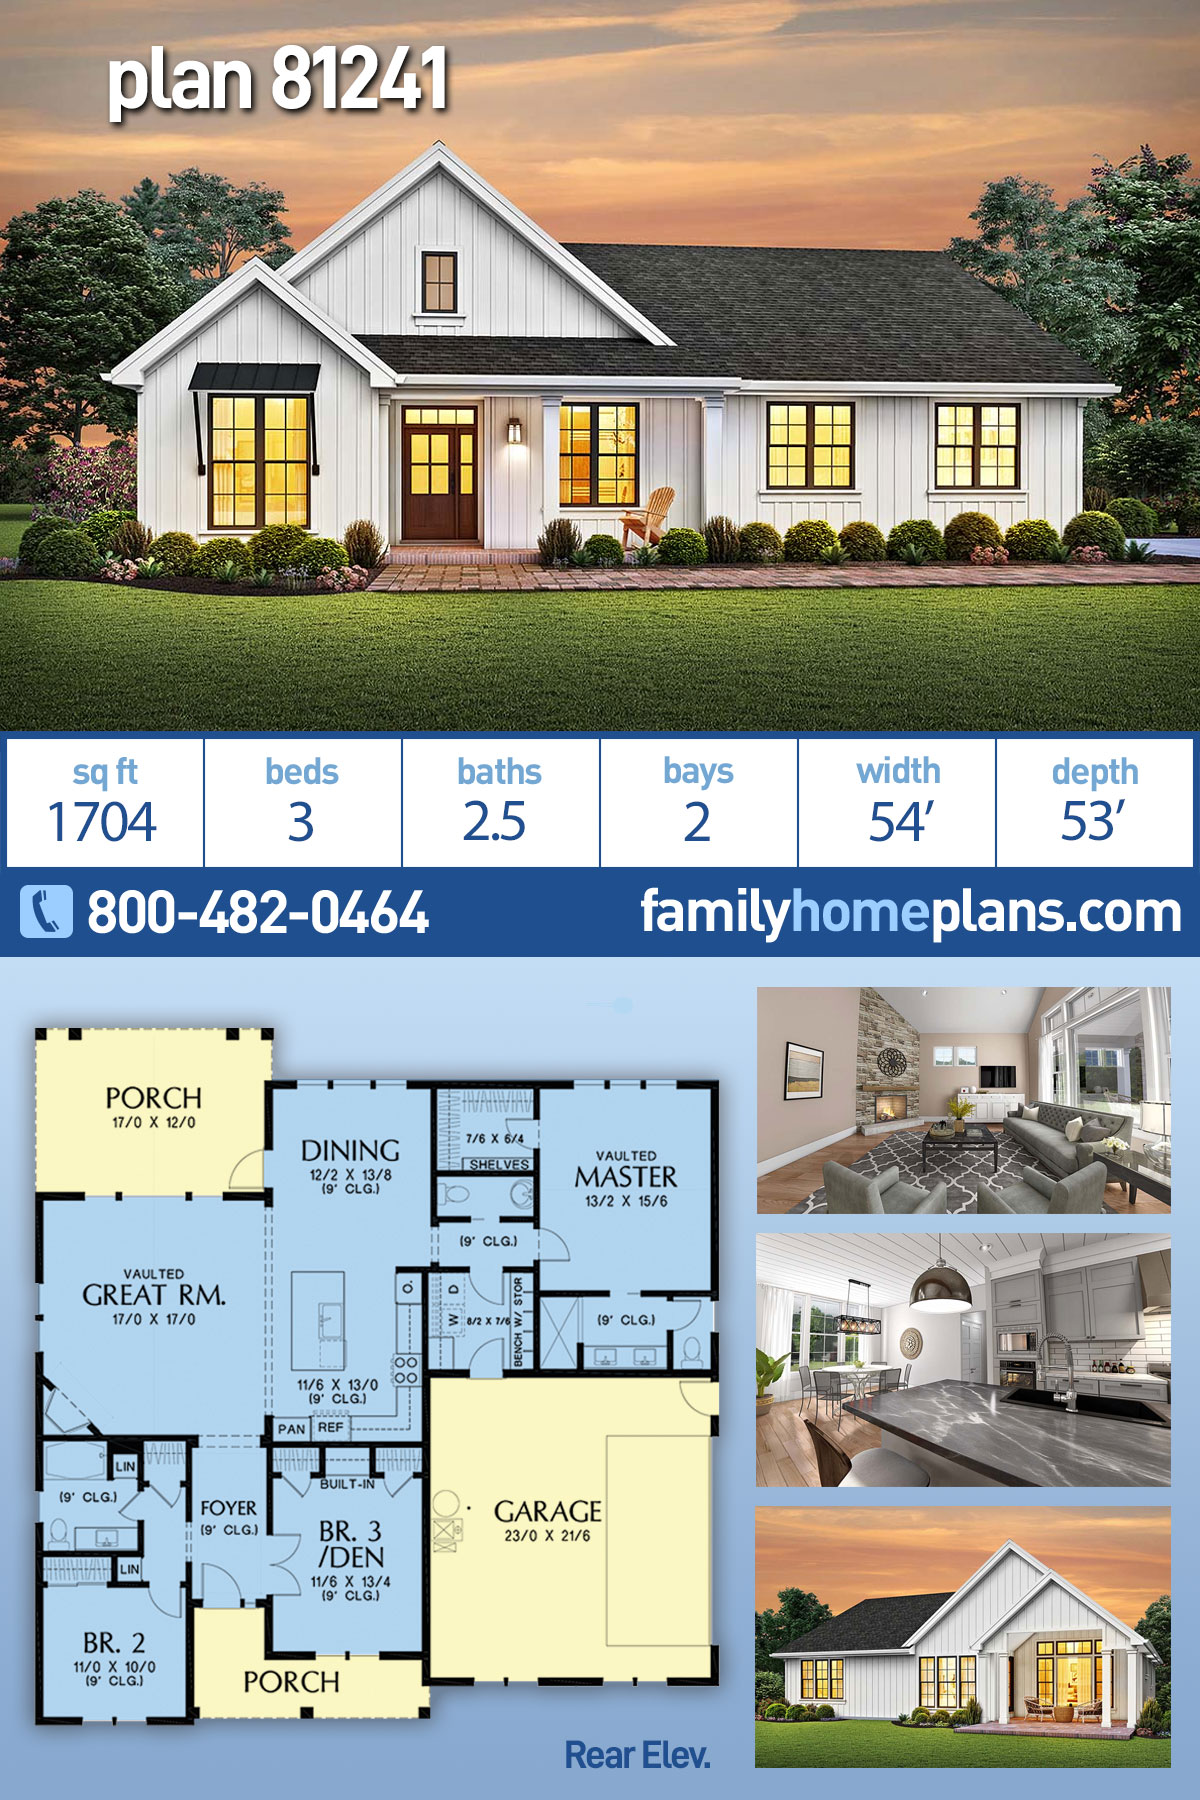 Cottage, Country, Ranch, Traditional House Plan 81241 with 3 Beds, 3 Baths, 2 Car Garage